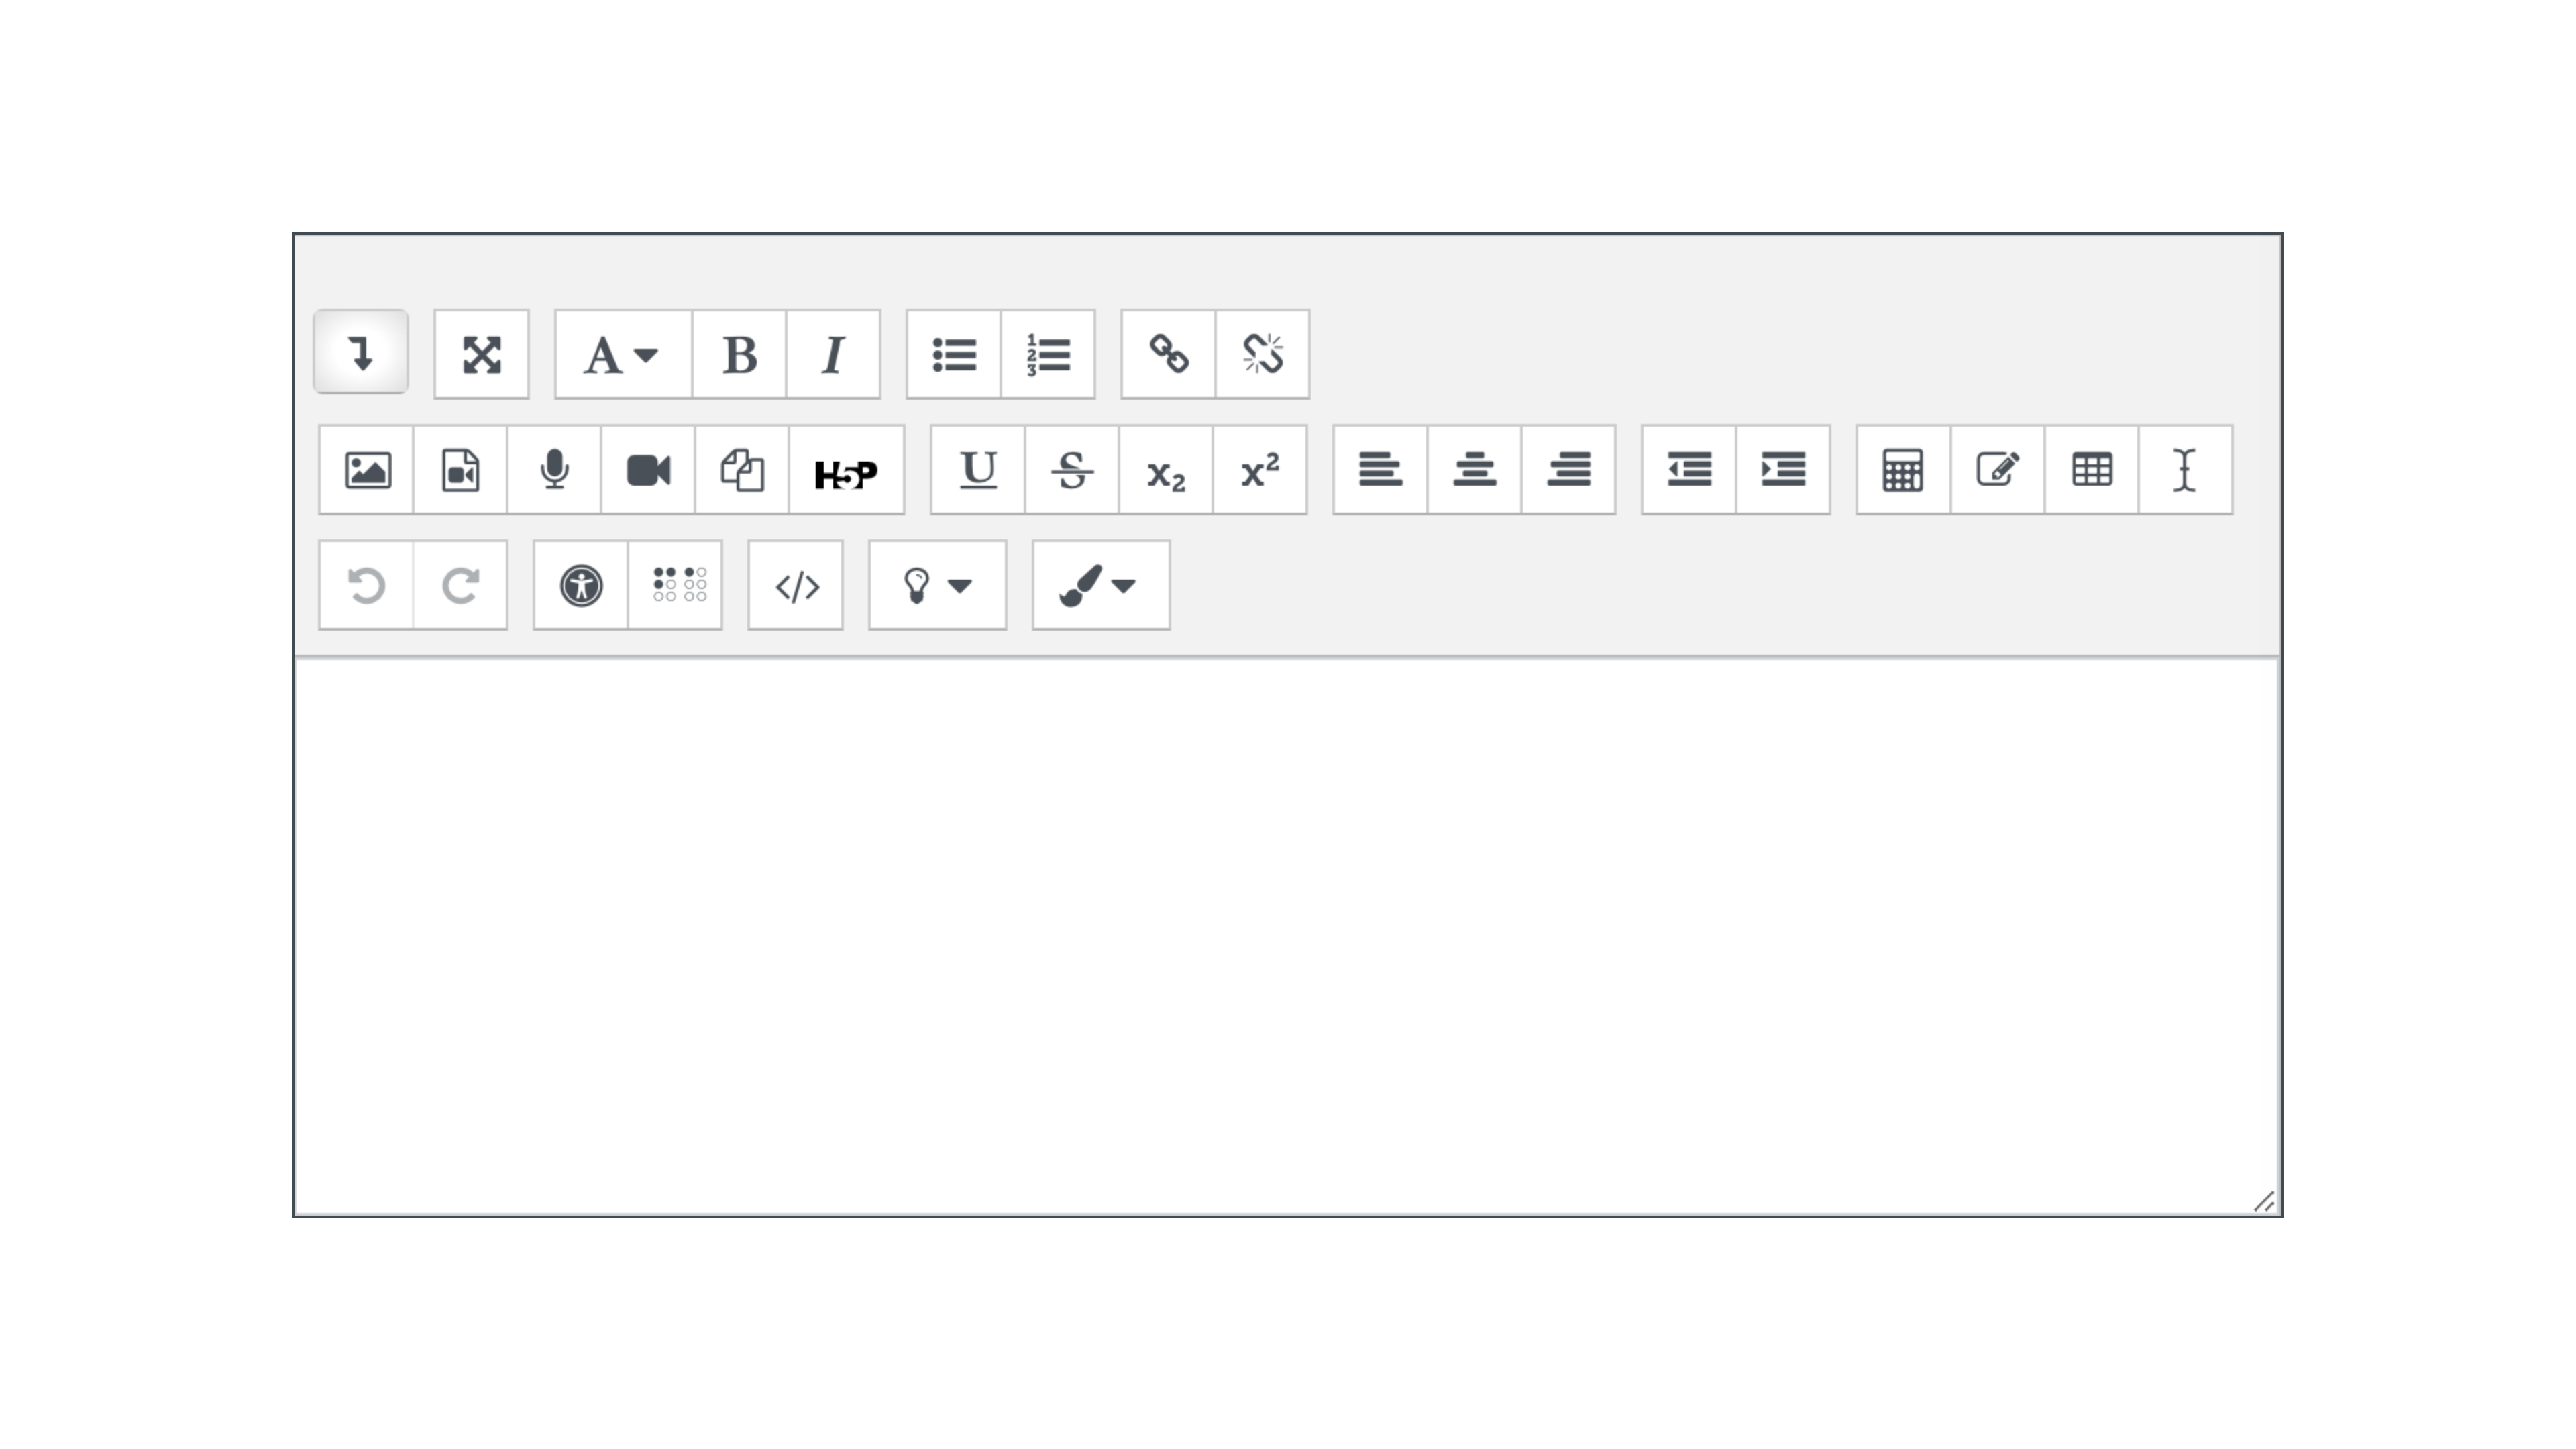 Screenshot of the expanded view of the Atto HTML editor in Moodle.